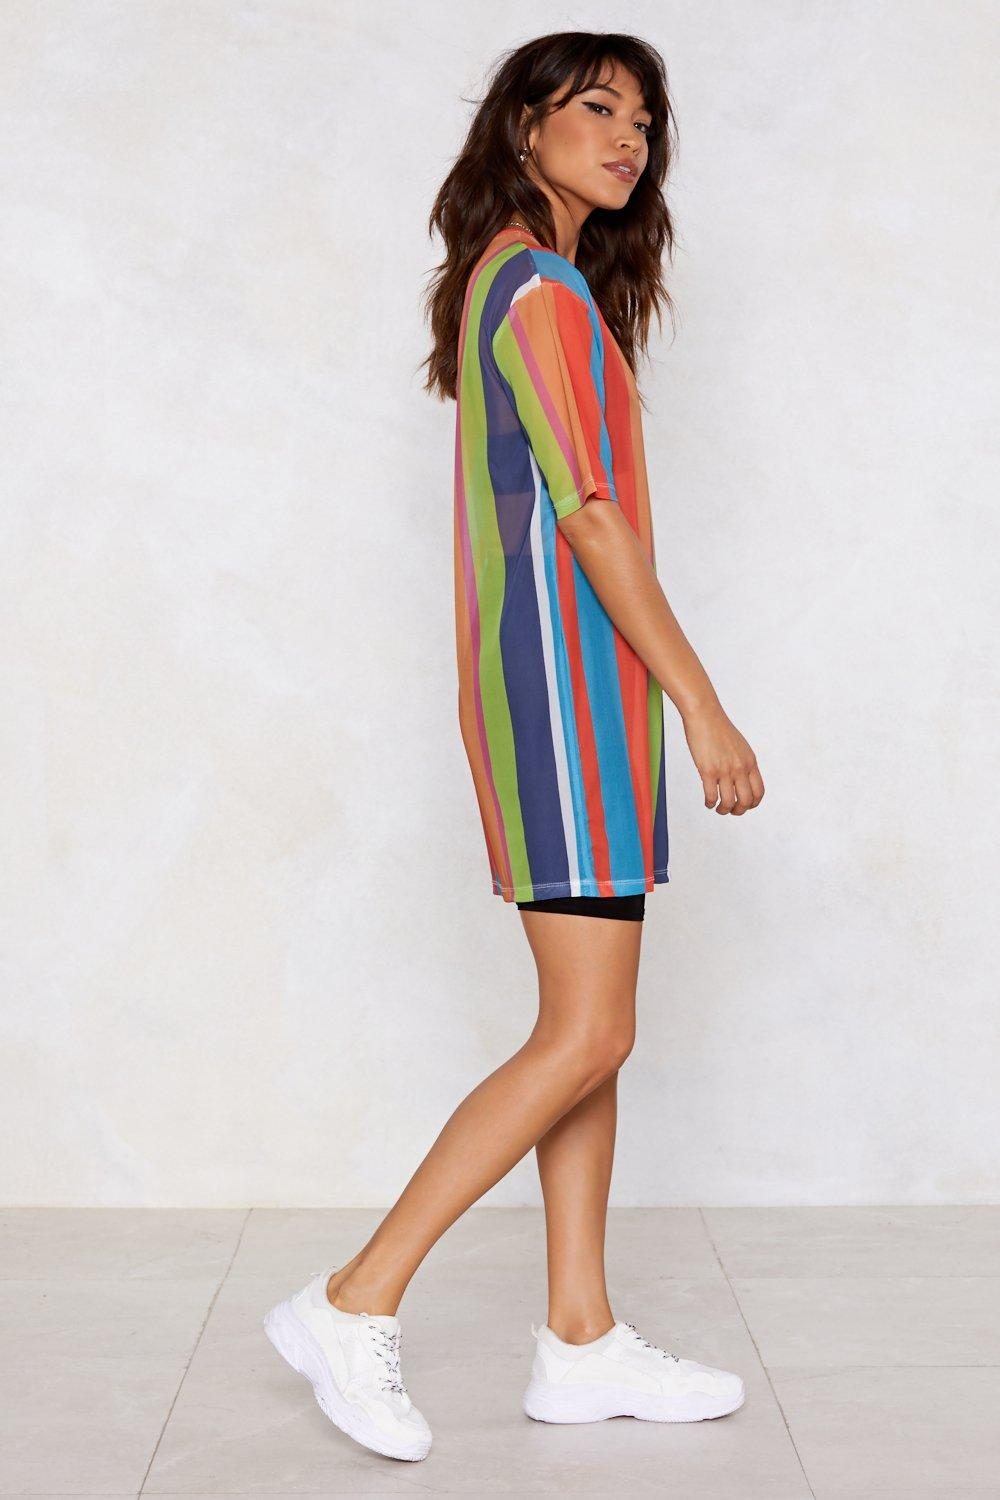 ccde094ccf0e4 As High As the Rainbow Striped Dress | Shop Clothes at Nasty Gal!